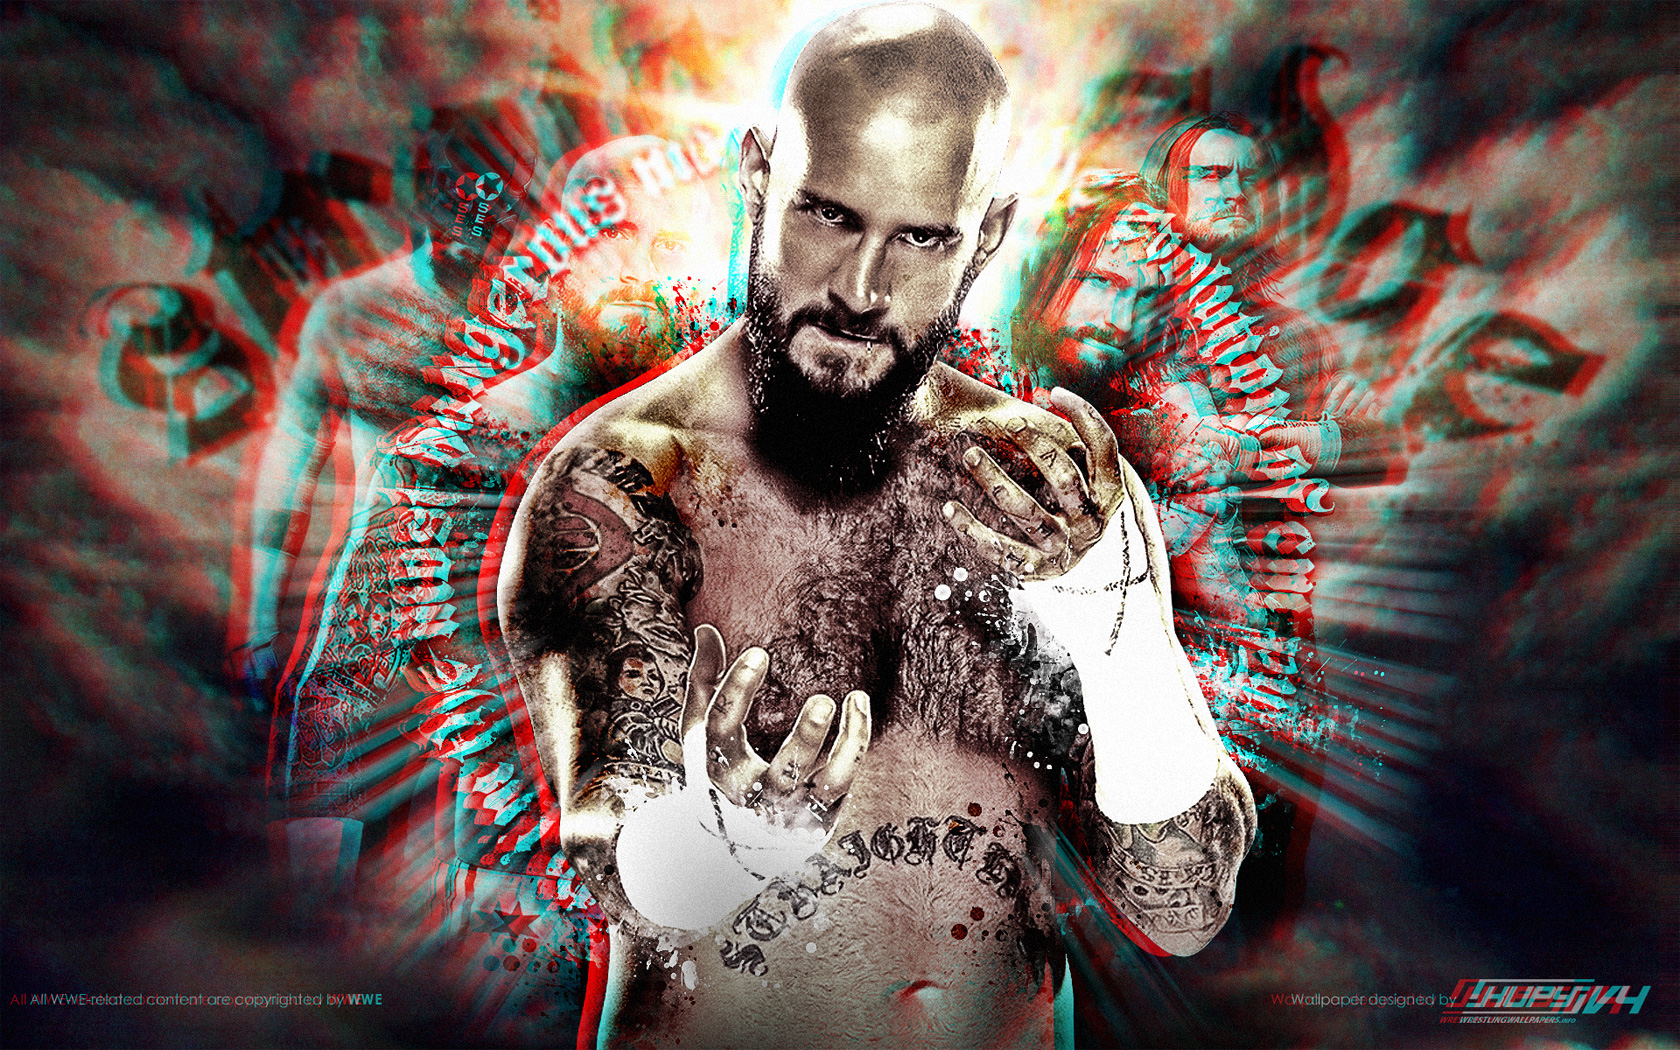 KupyWrestlingWallpapersINFO The Newest Wrestling Wallpapers On